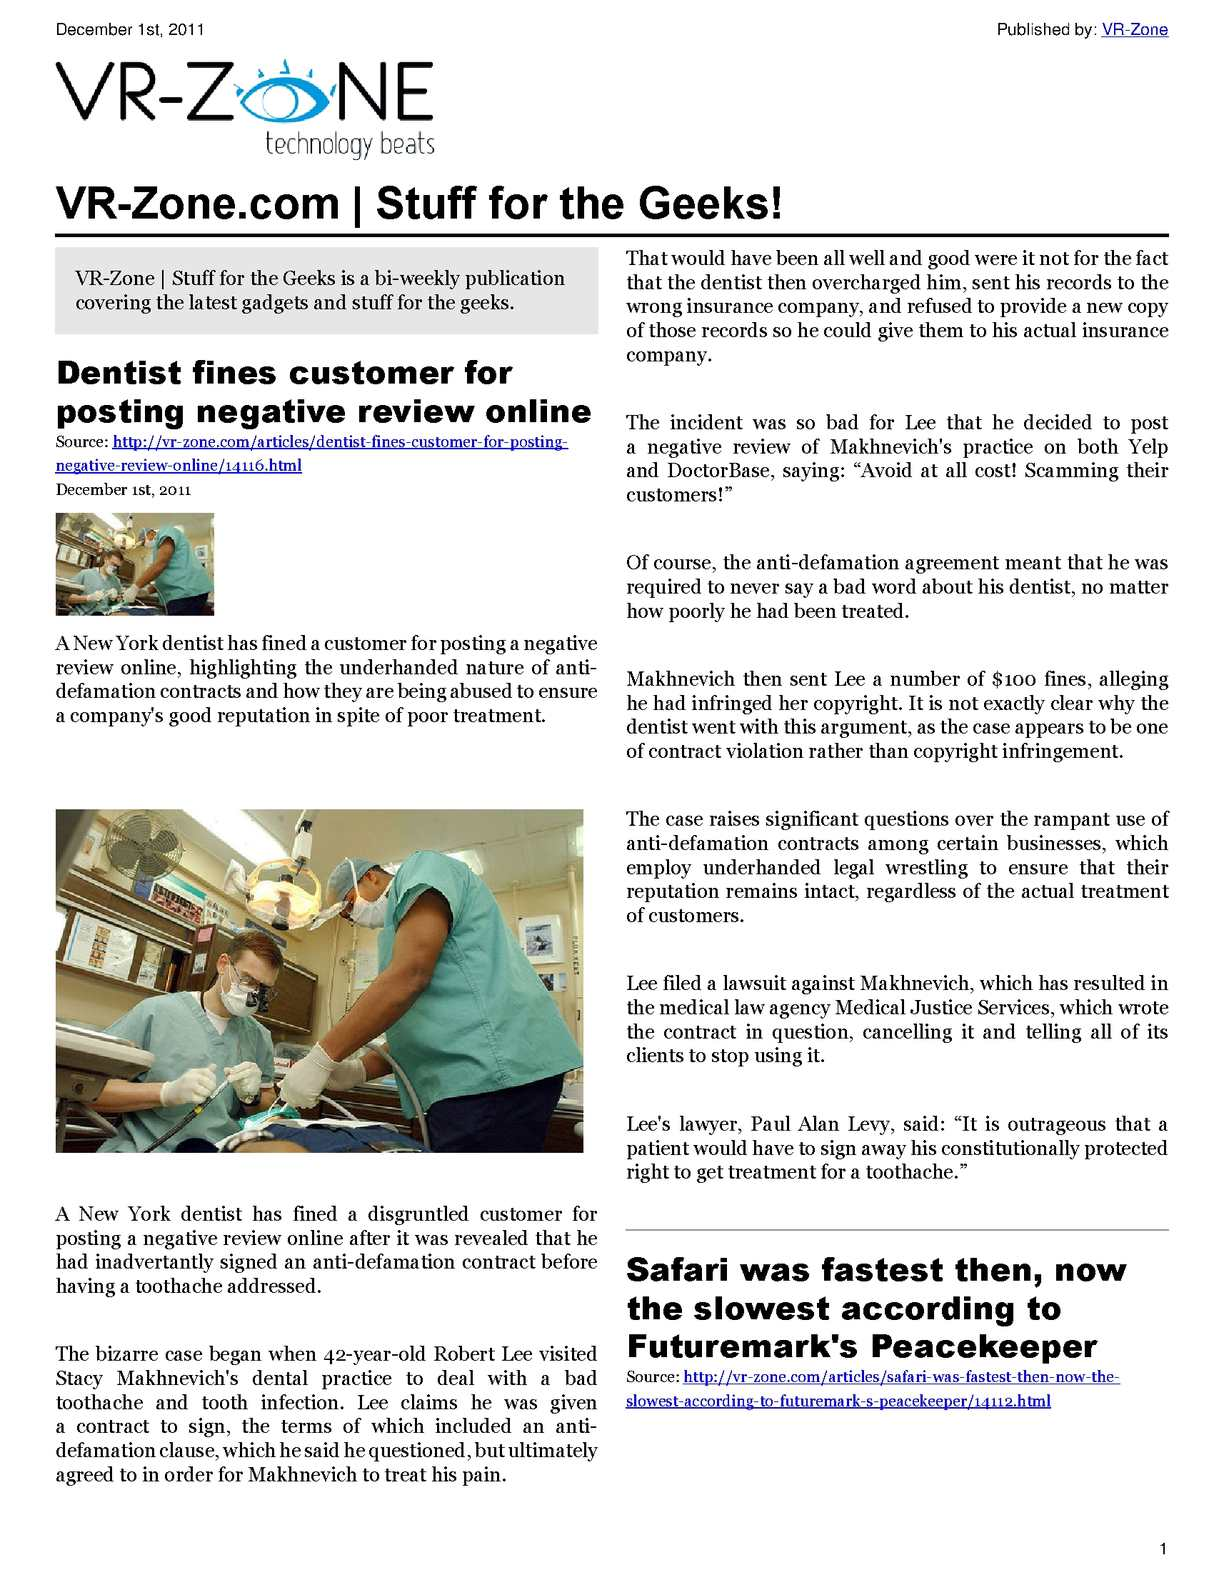 Calaméo - VR-Zone Tech News for the Geeks Dec 2011 Issue